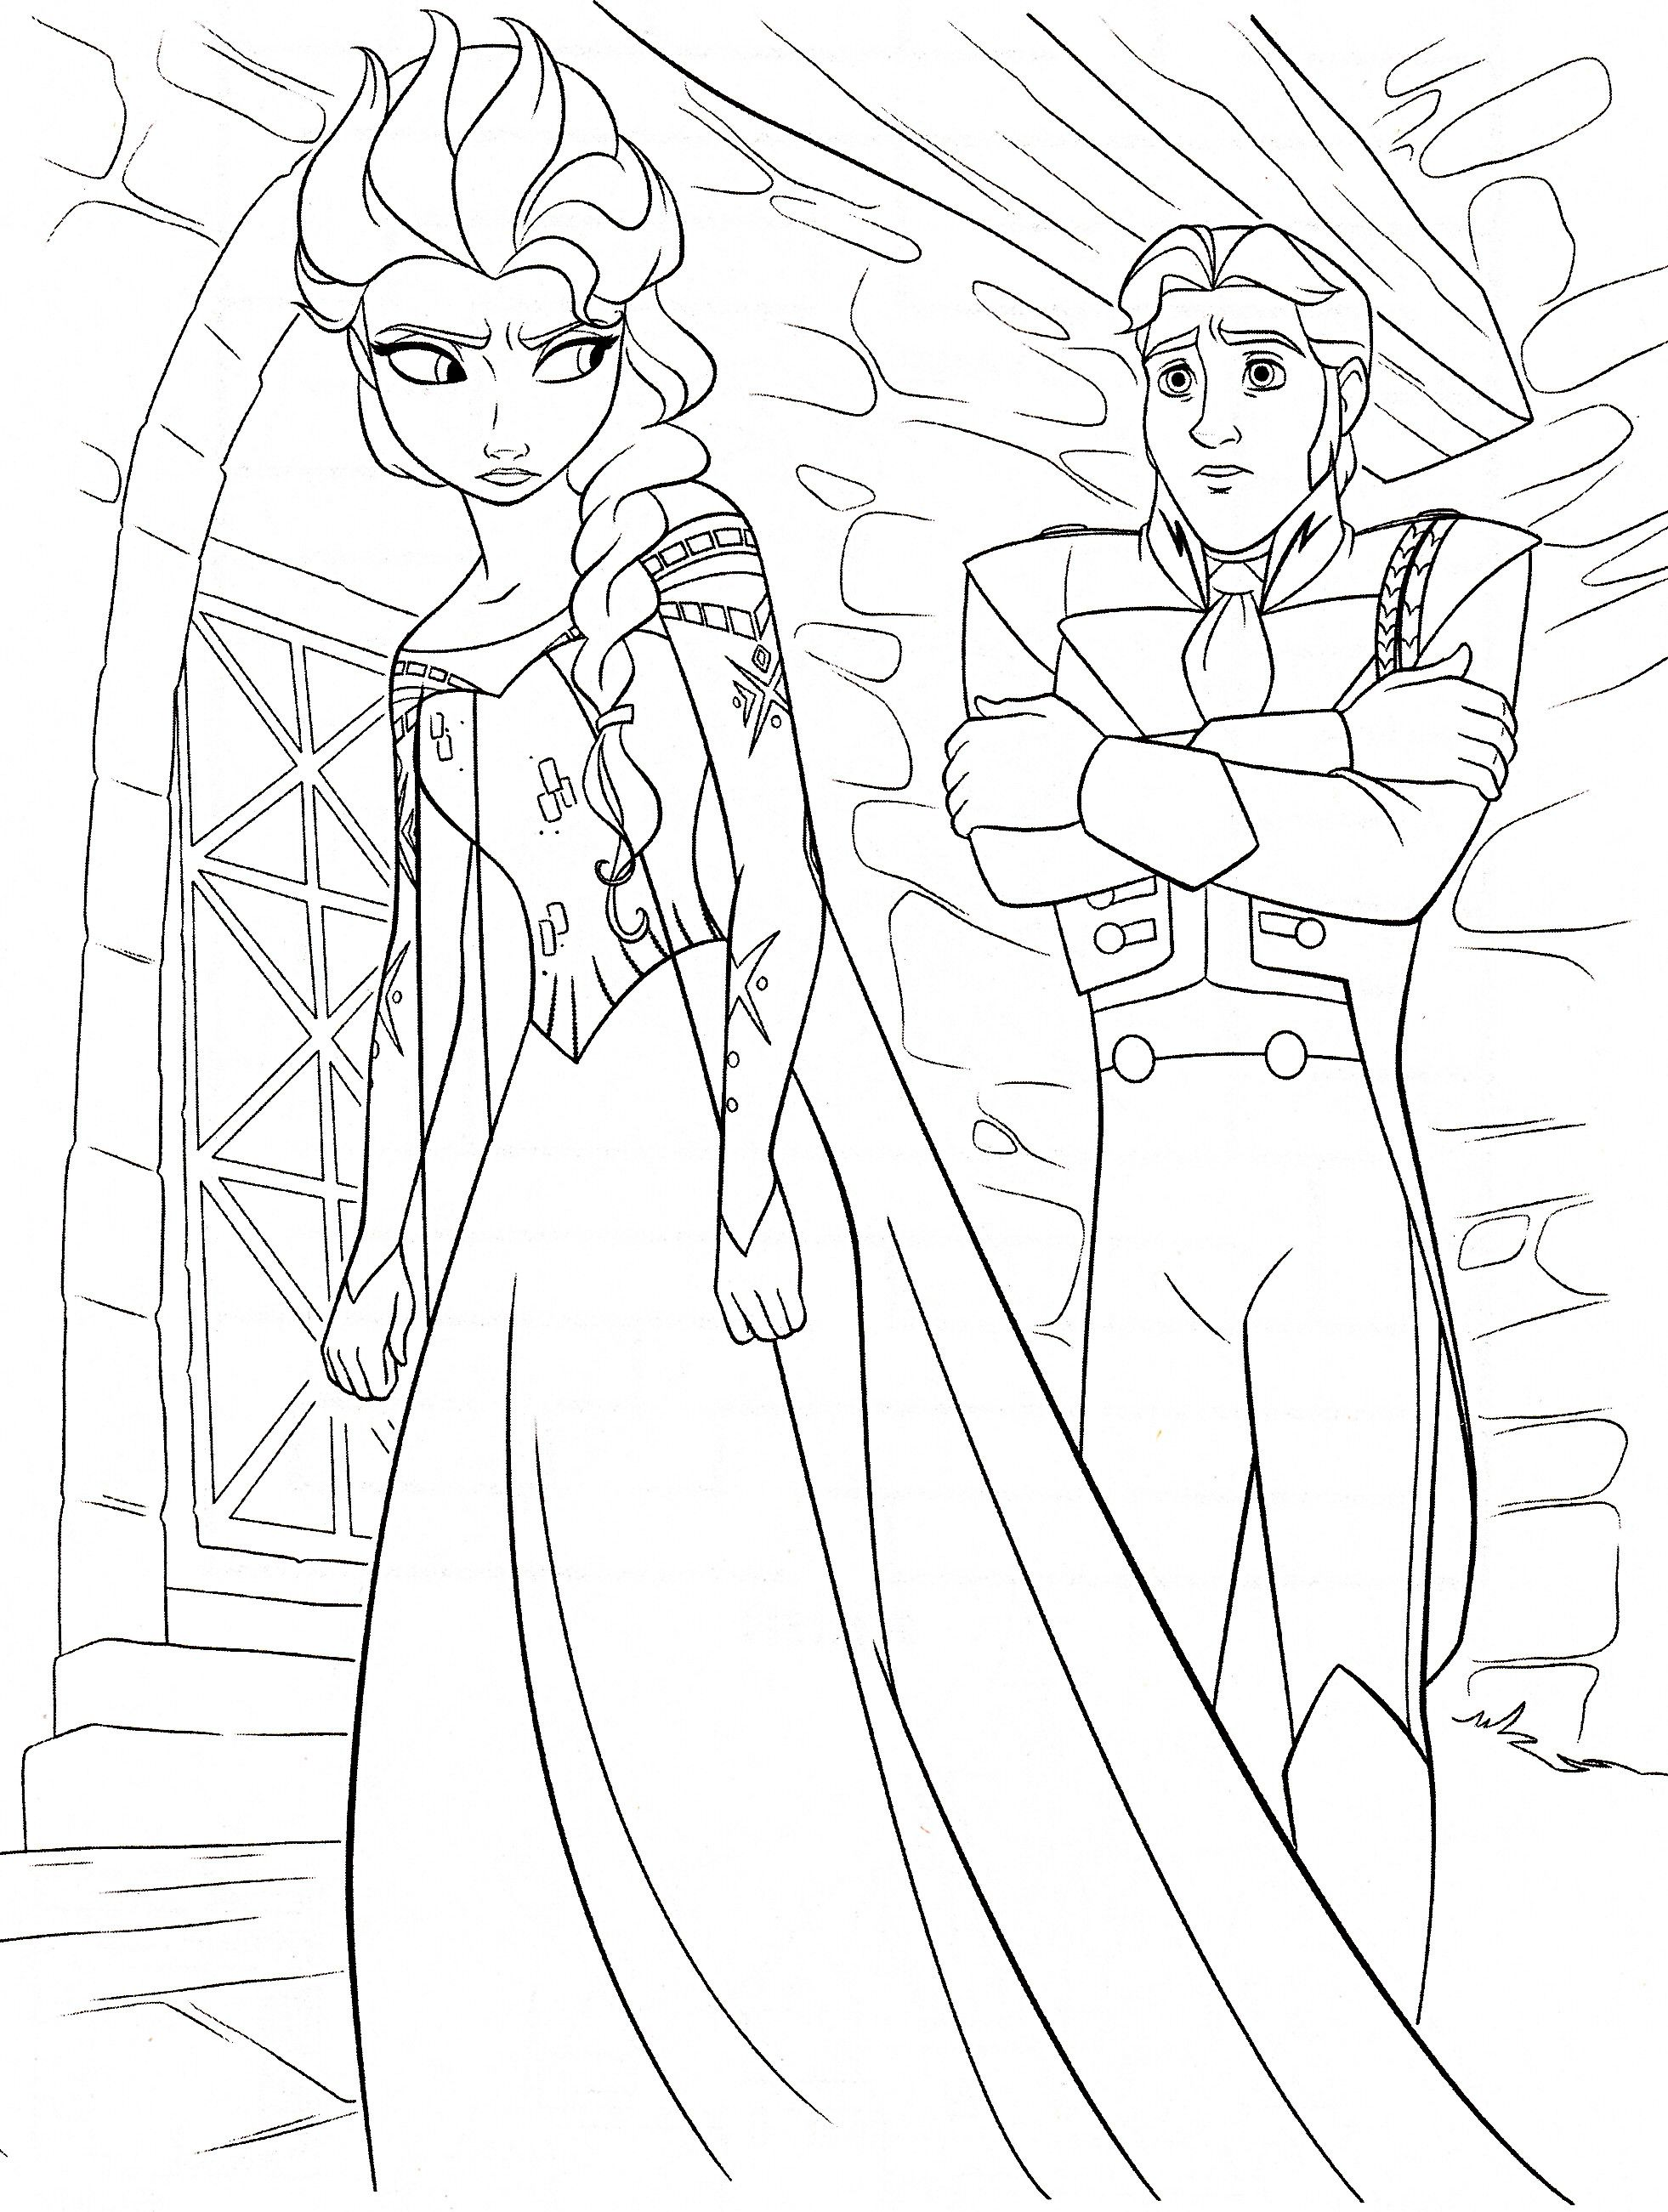 Kleurplaten Disney On Ice.Frozen Kleurplaten Elsa Hans Coloring Pages Frozen Coloring